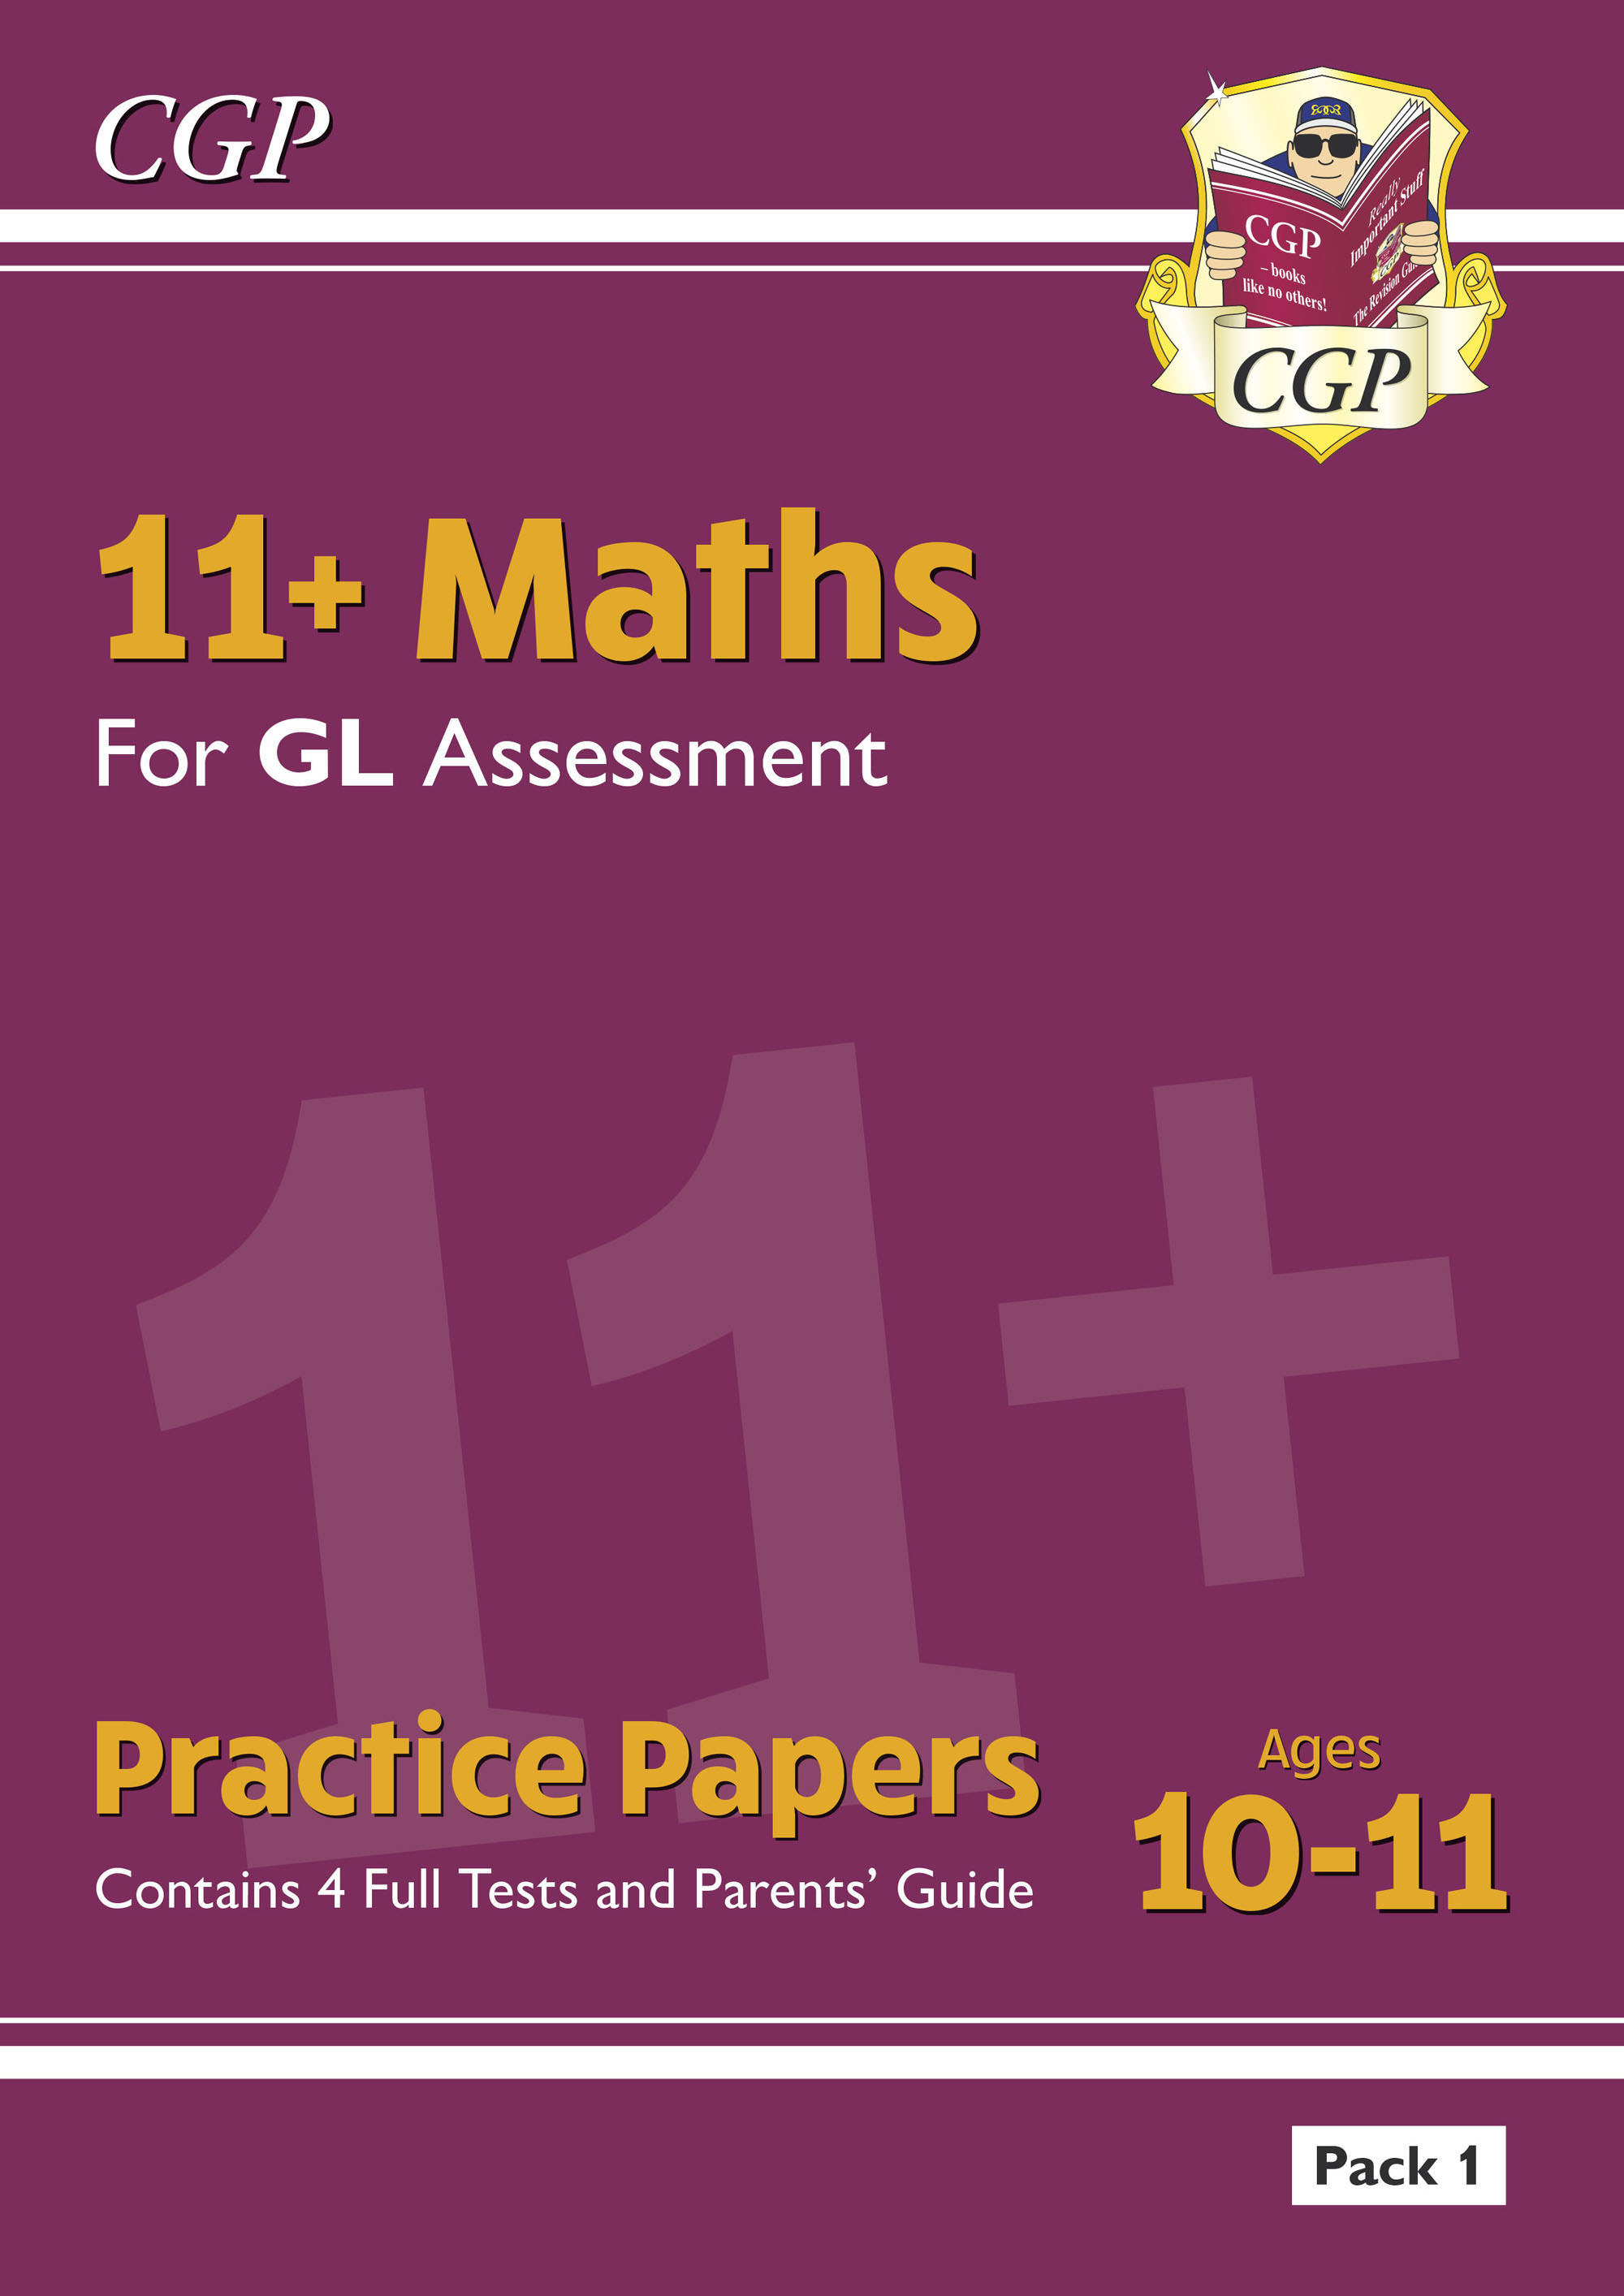 MHTE2DK - New 11+ GL Maths Practice Papers: Ages 10-11 - Pack 1 (with Parents' Guide)